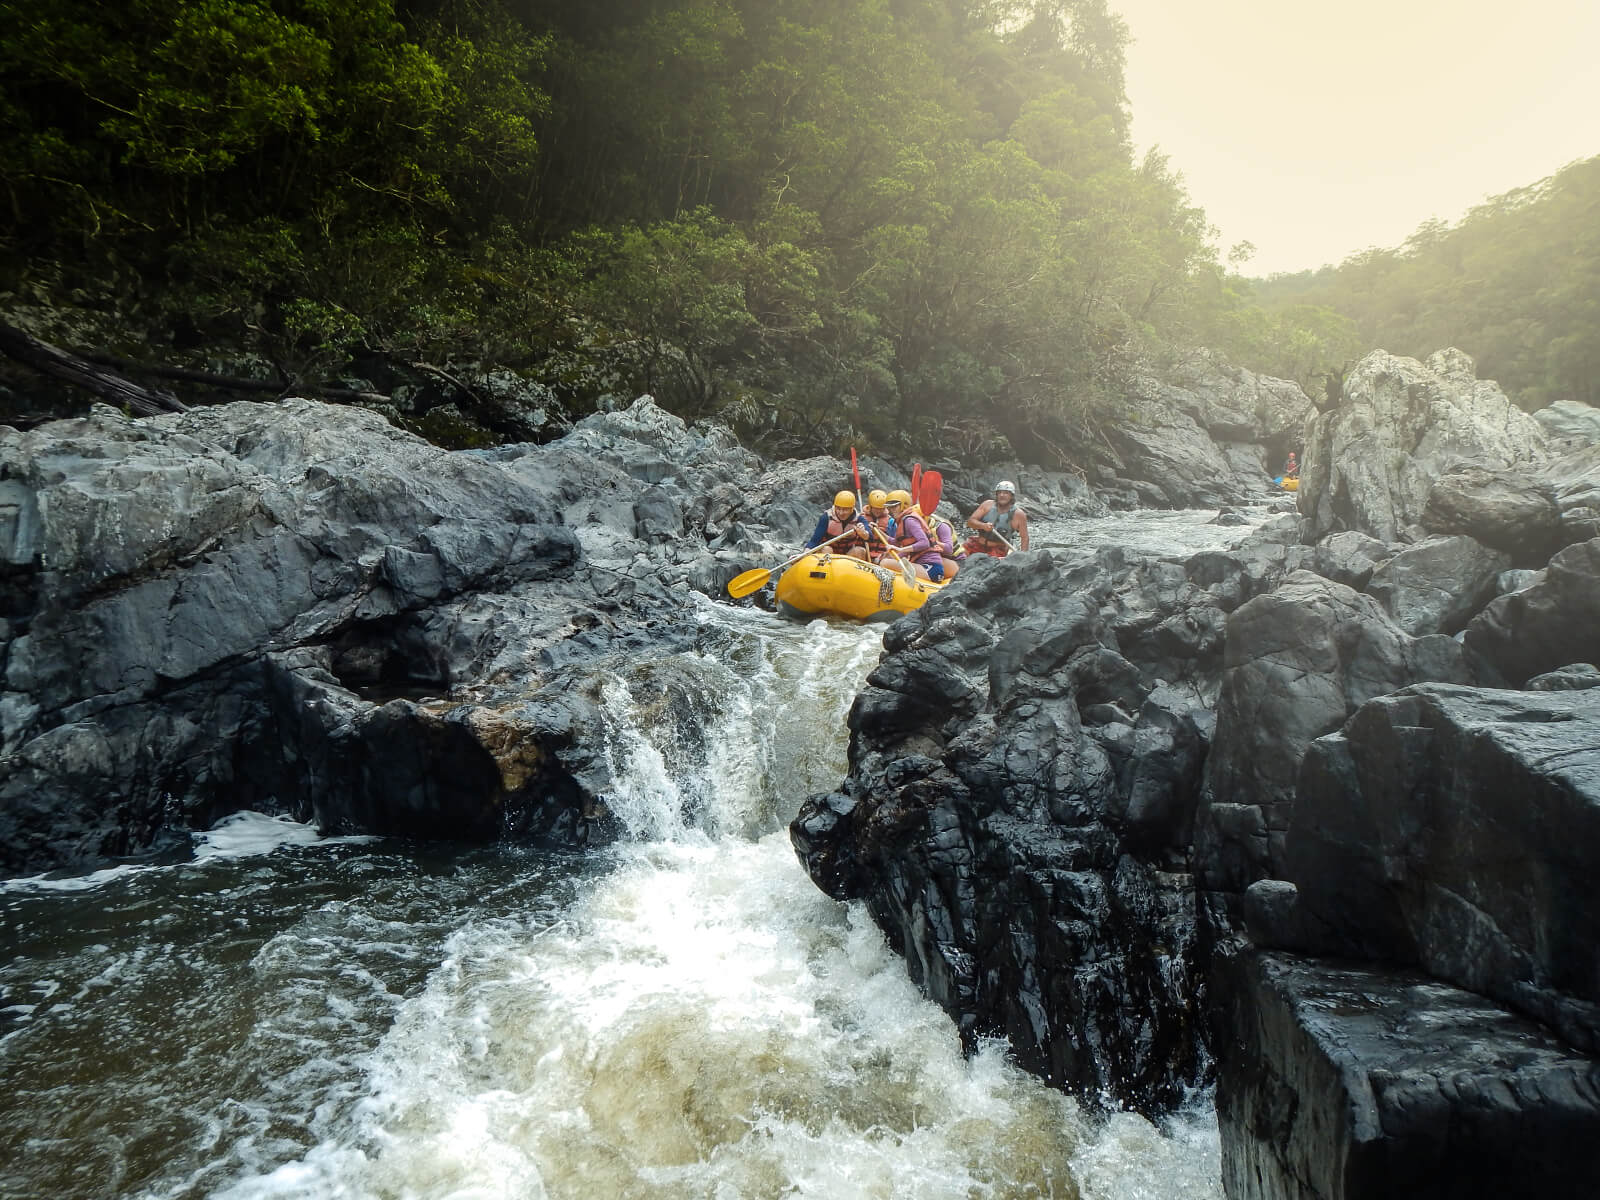 White water rafting in Coffs Harbour with kids